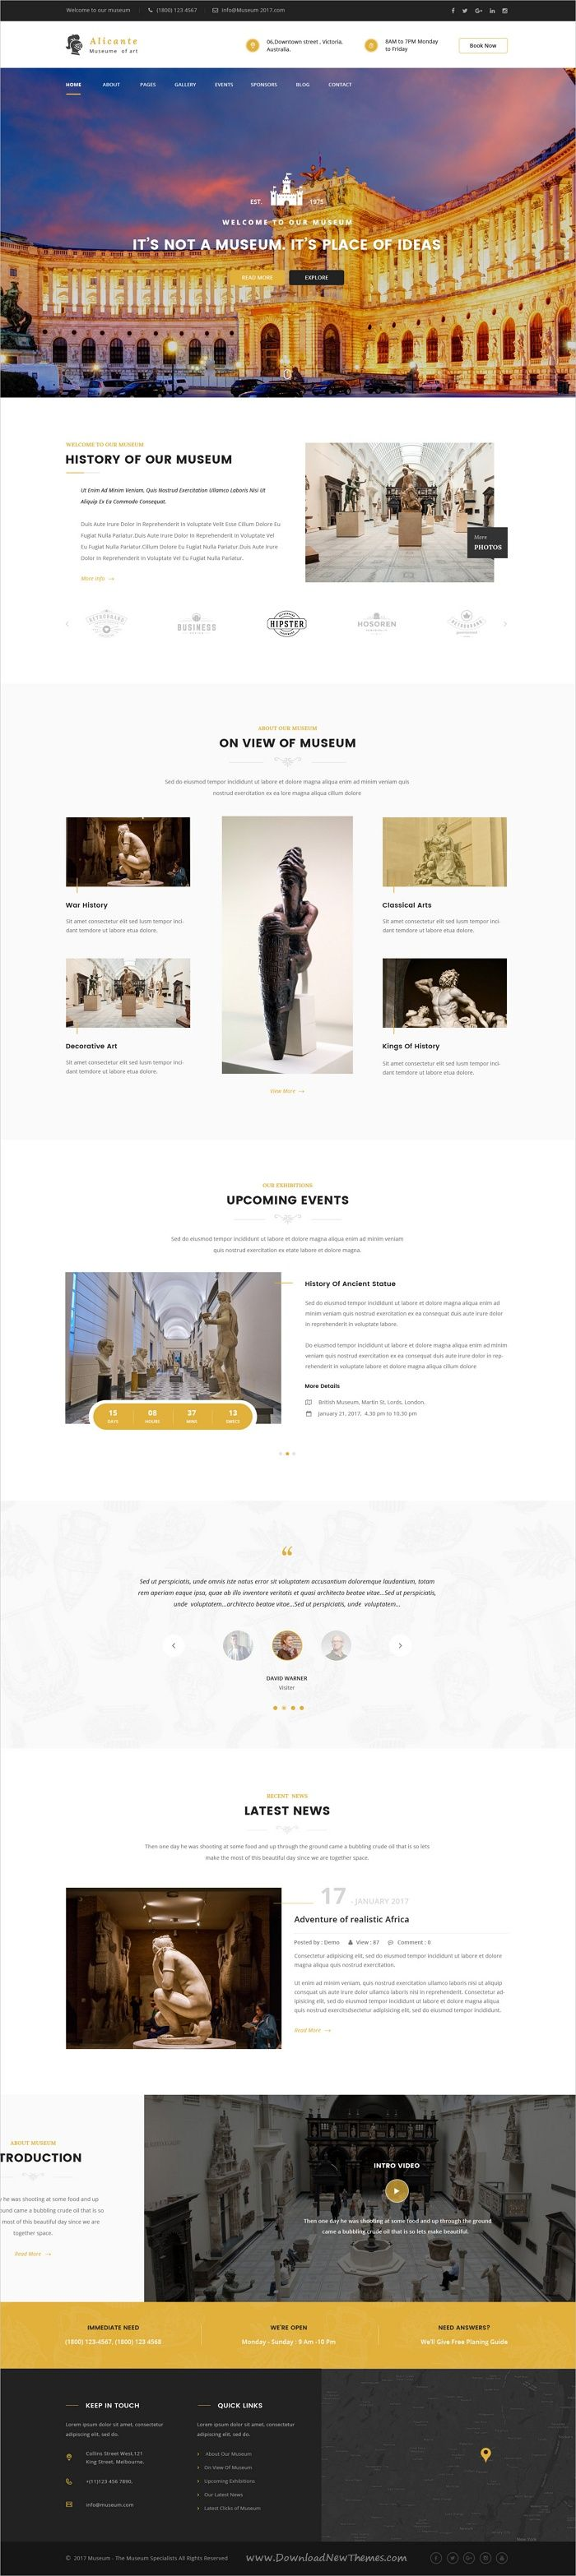 Alicante is beautifully design #Photoshop template for stunning #museum or #art gallery website with 4 homepage layouts and 17 organized PSD pages download now➩ https://themeforest.net/item/alicante-museum-psd-template/19427490?ref=Datasata